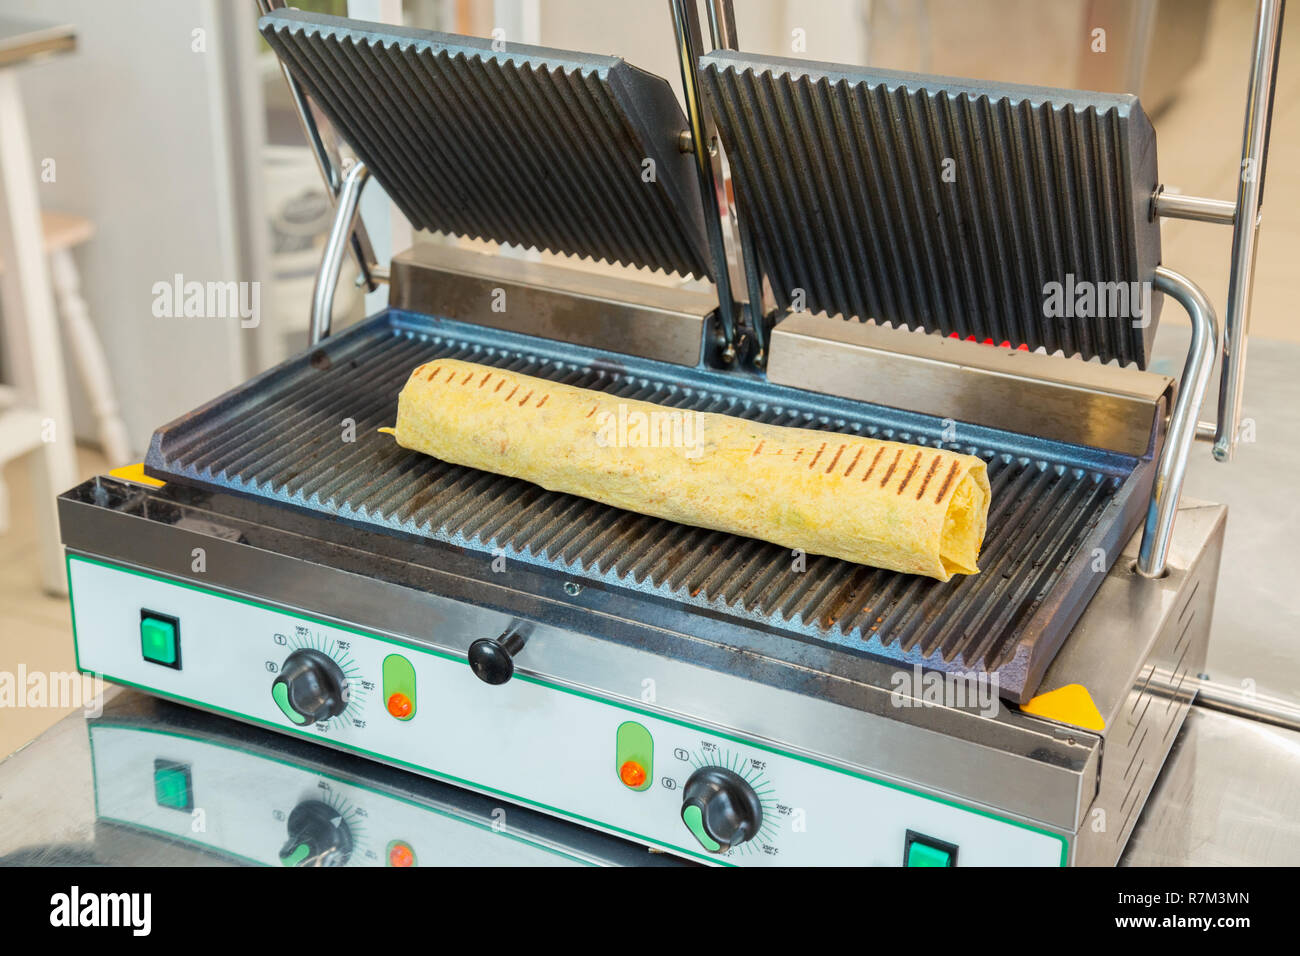 hight resolution of preparation of shawarma on an electric furnace stock image